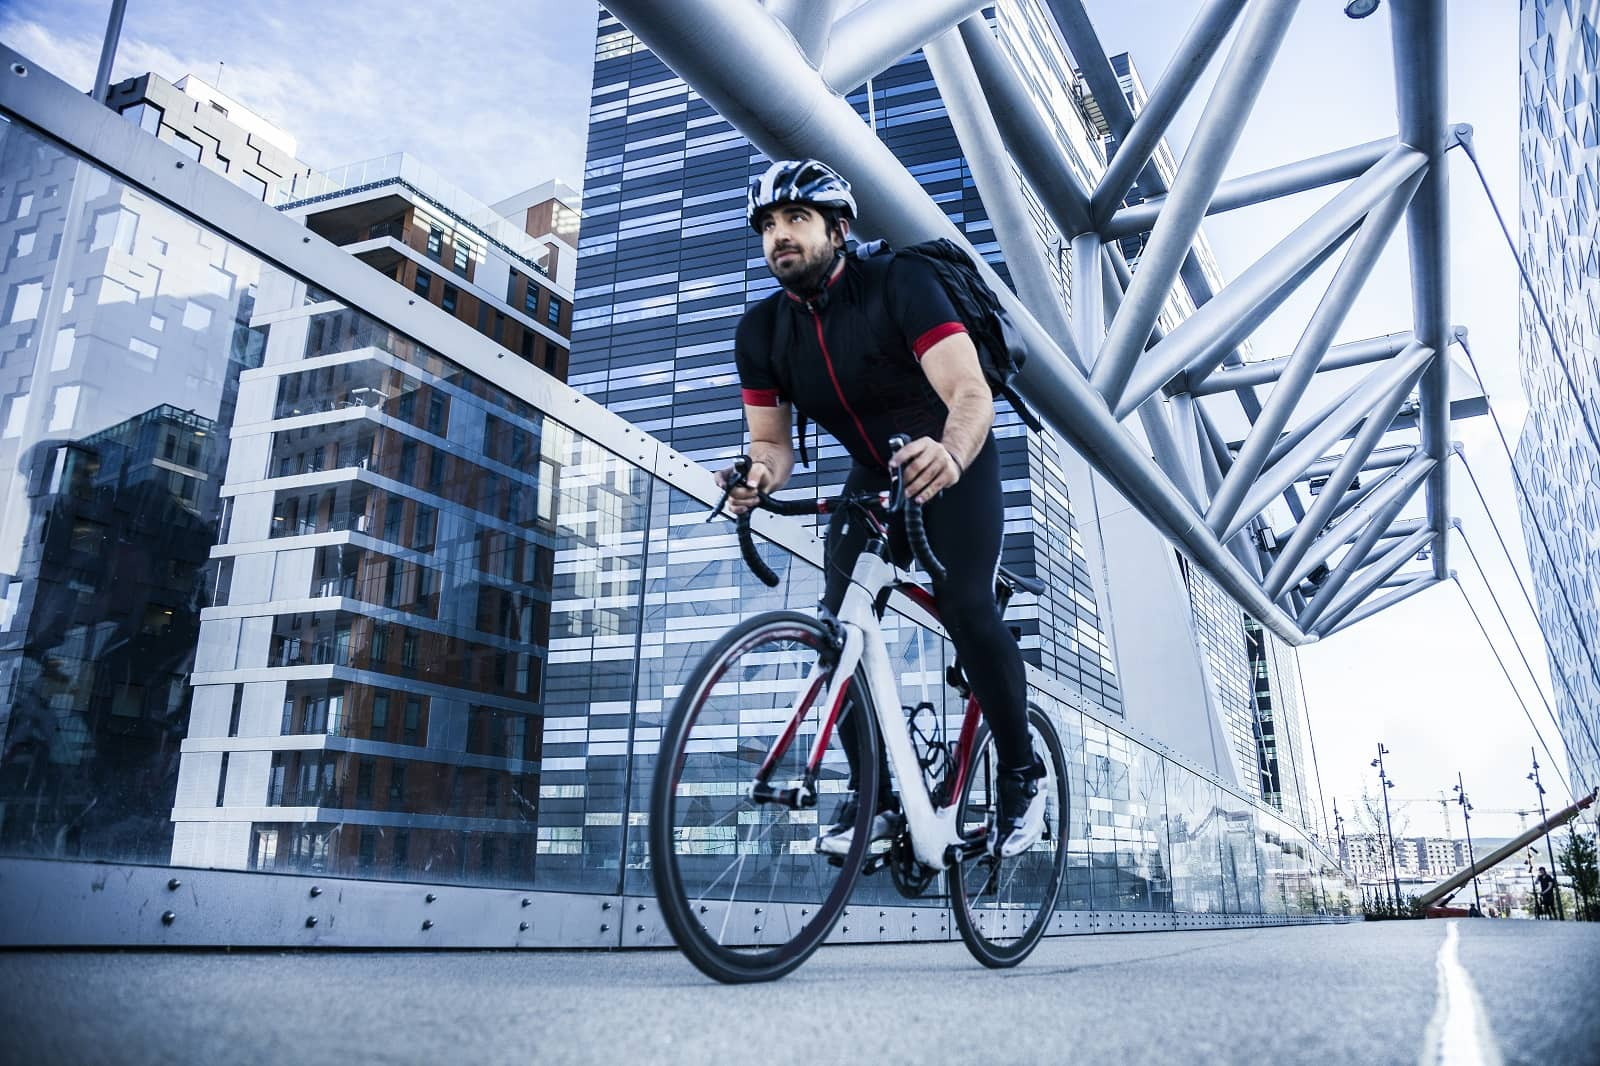 Man biking in city